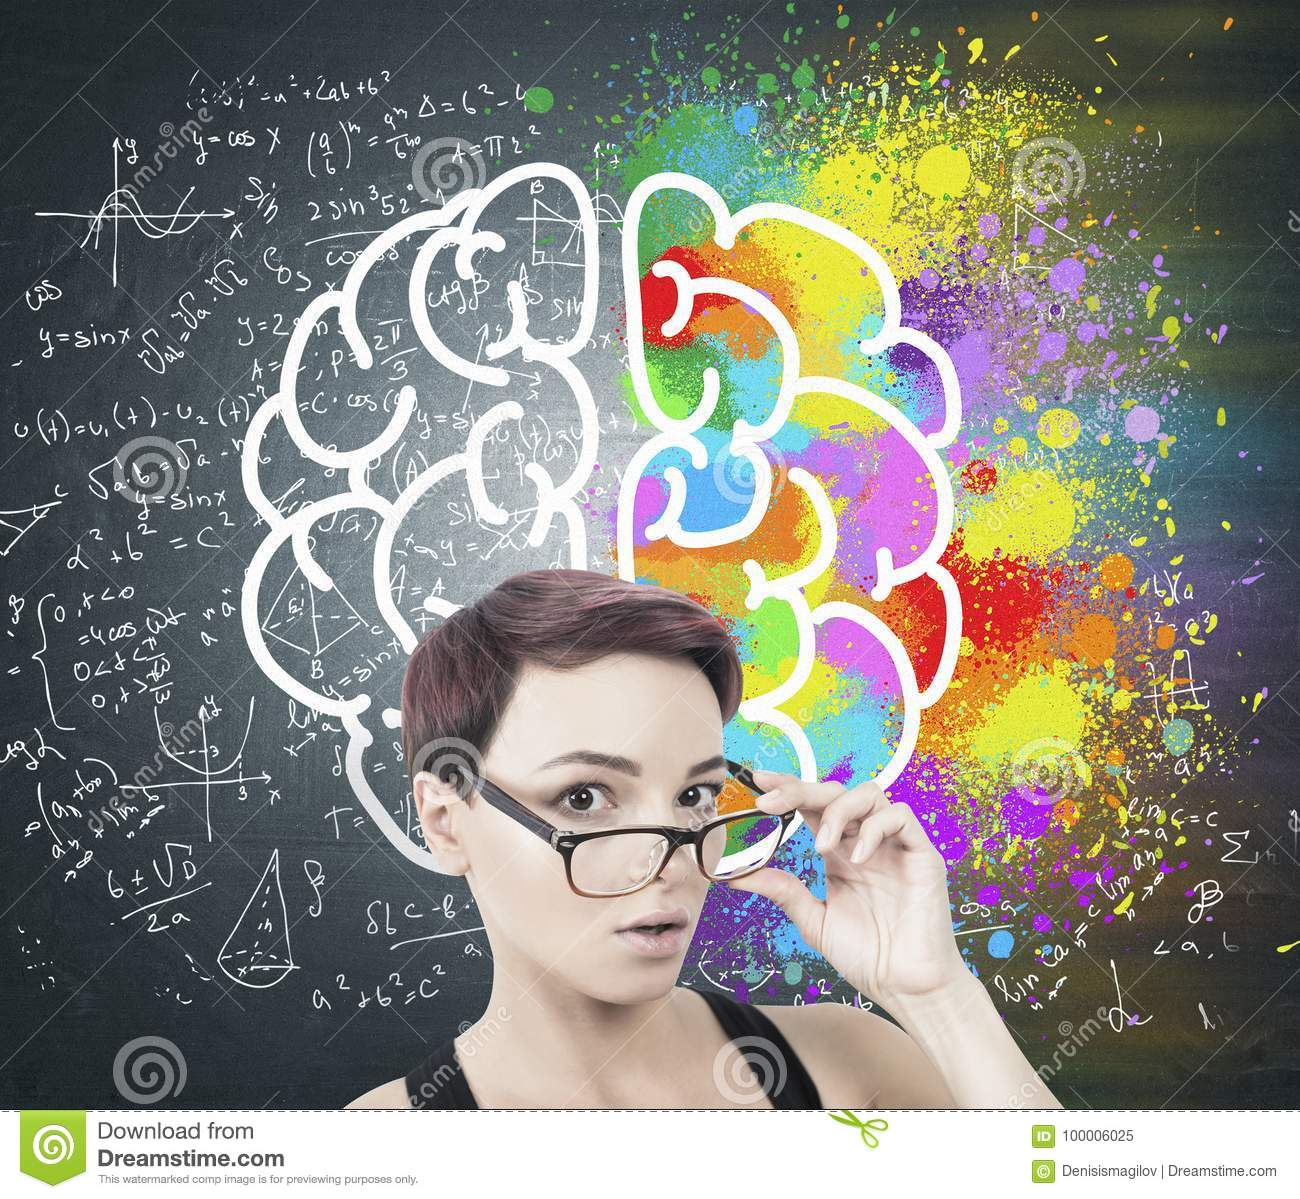 05a960a2cff Portrait of a young surprised woman with short red hair taking off her  glasses. She is standing near a blackboard with formulas and a colorful  brain sketch ...